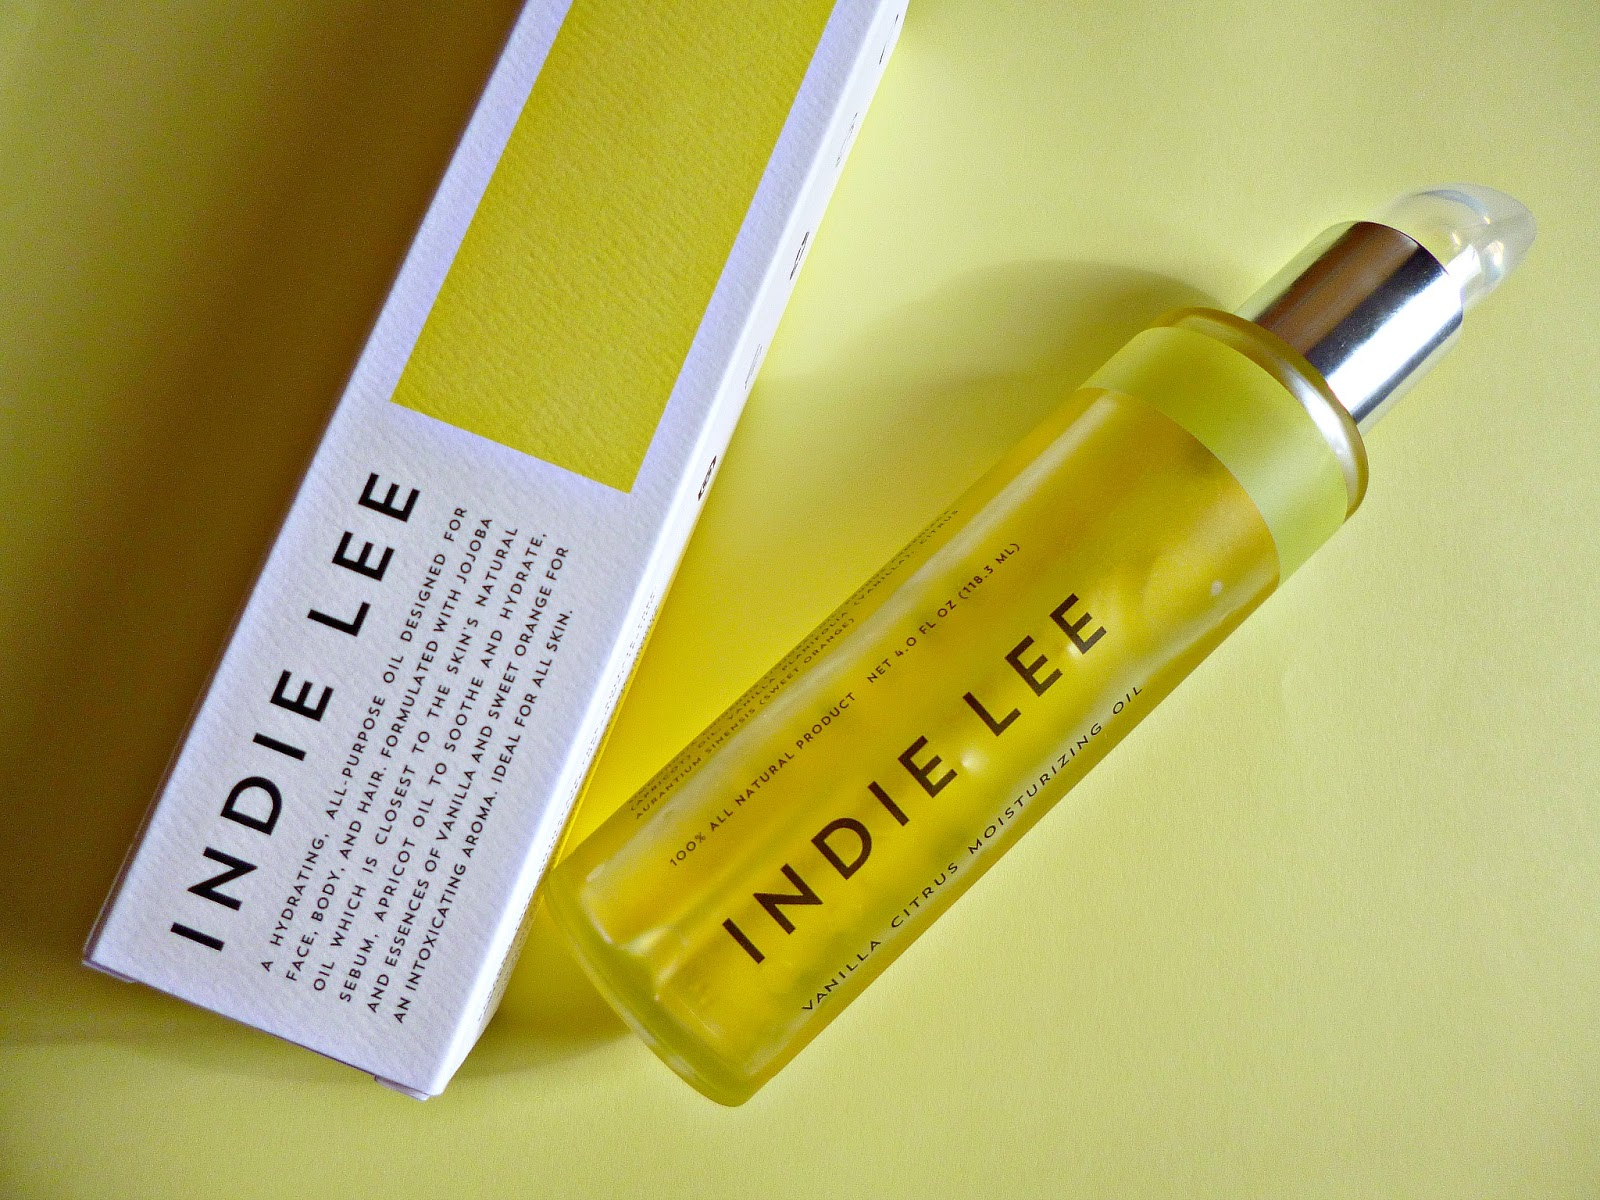 New to the UK – Indie Lee Body oils